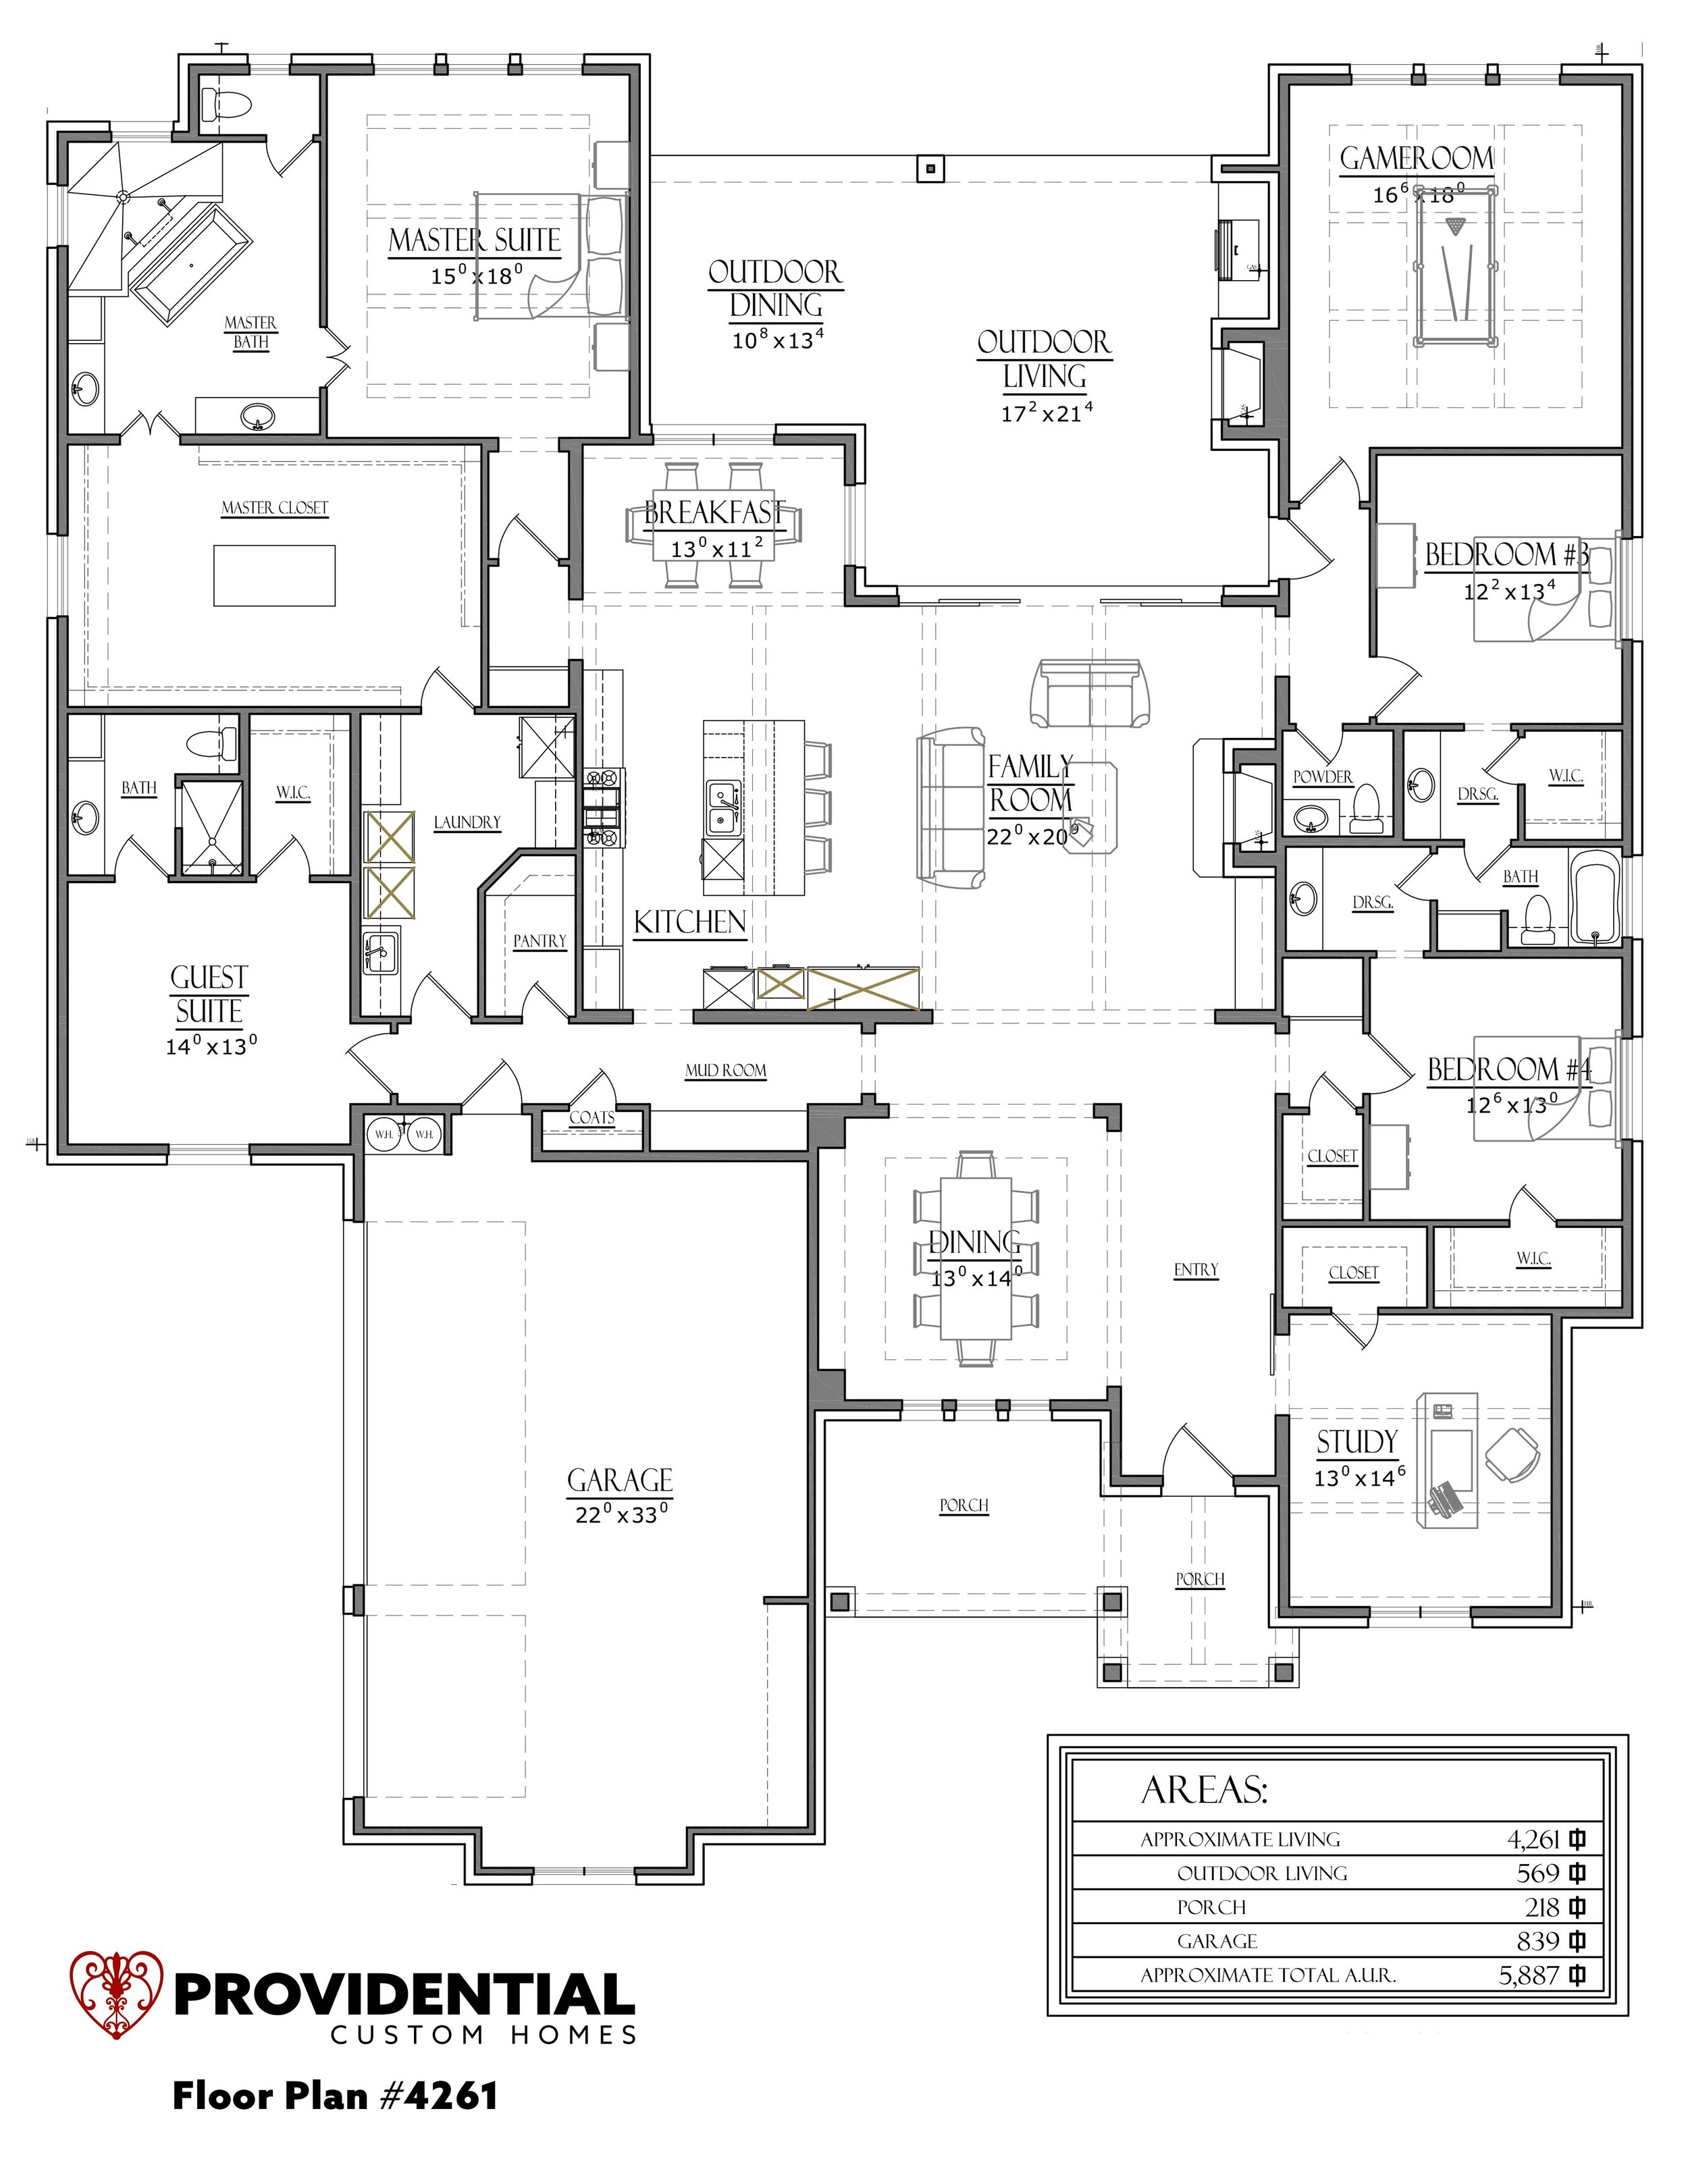 The FLOOR PLAN #4261.jpg